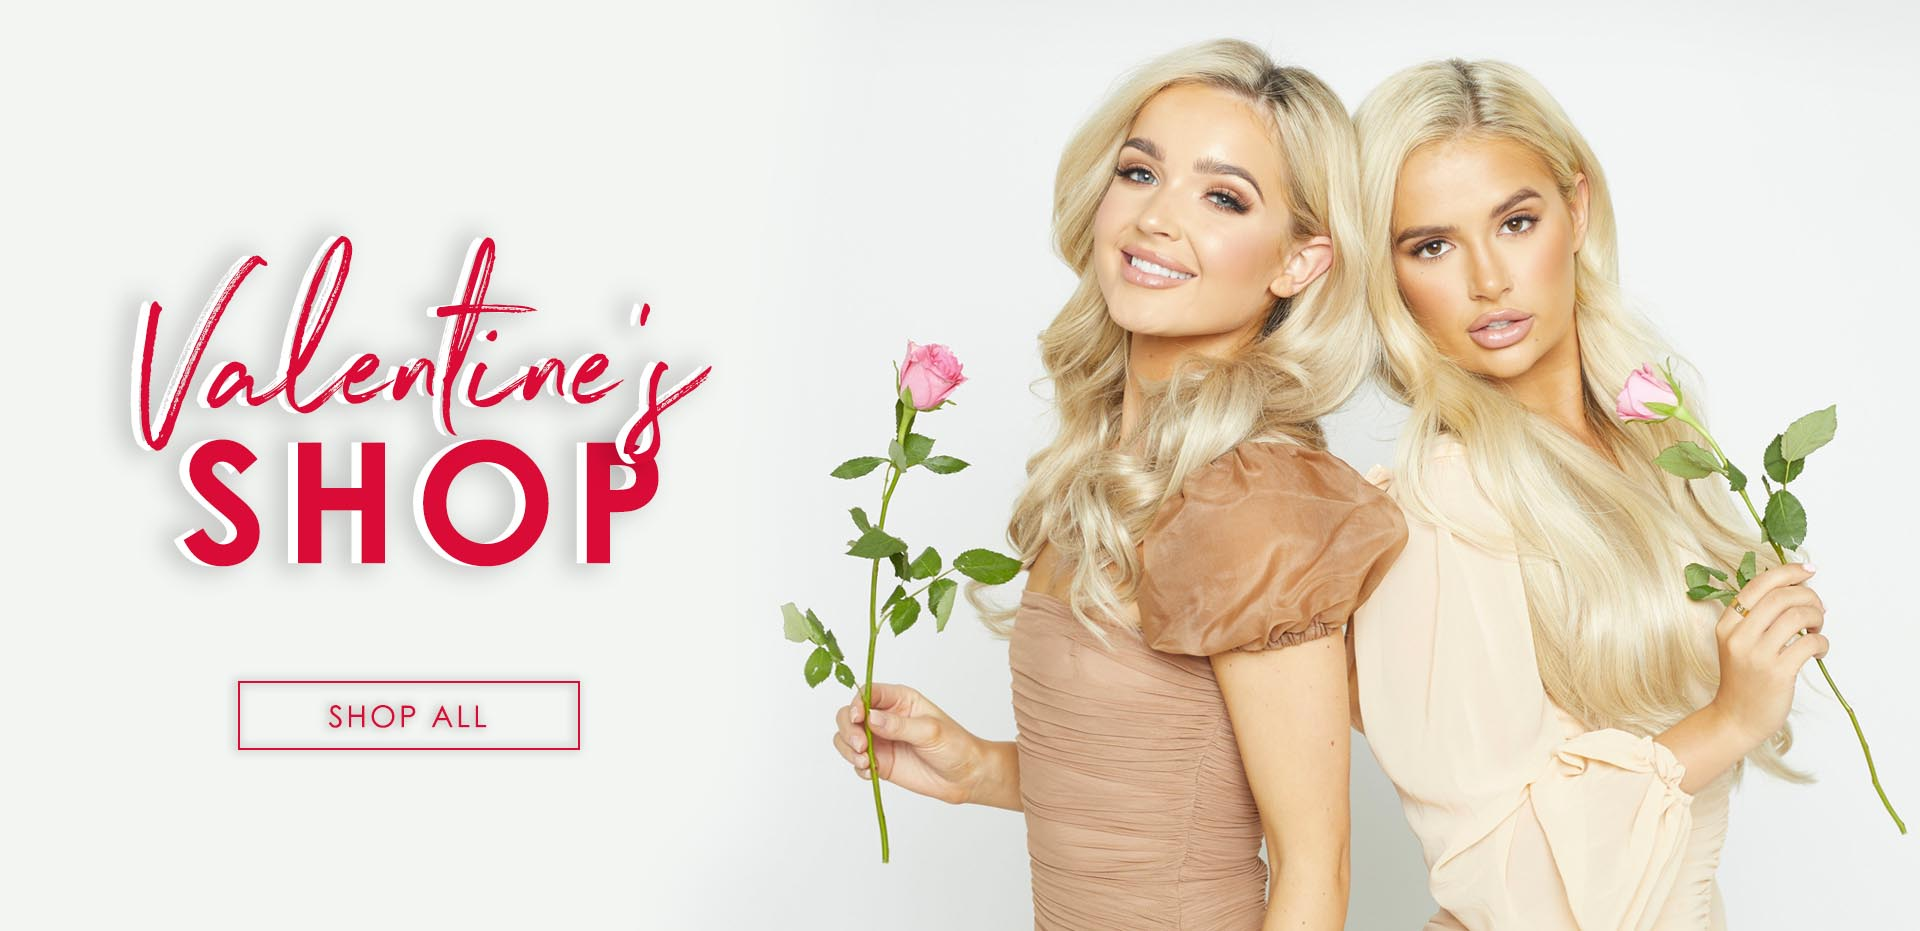 Beauty Works Valentines Shop Banner